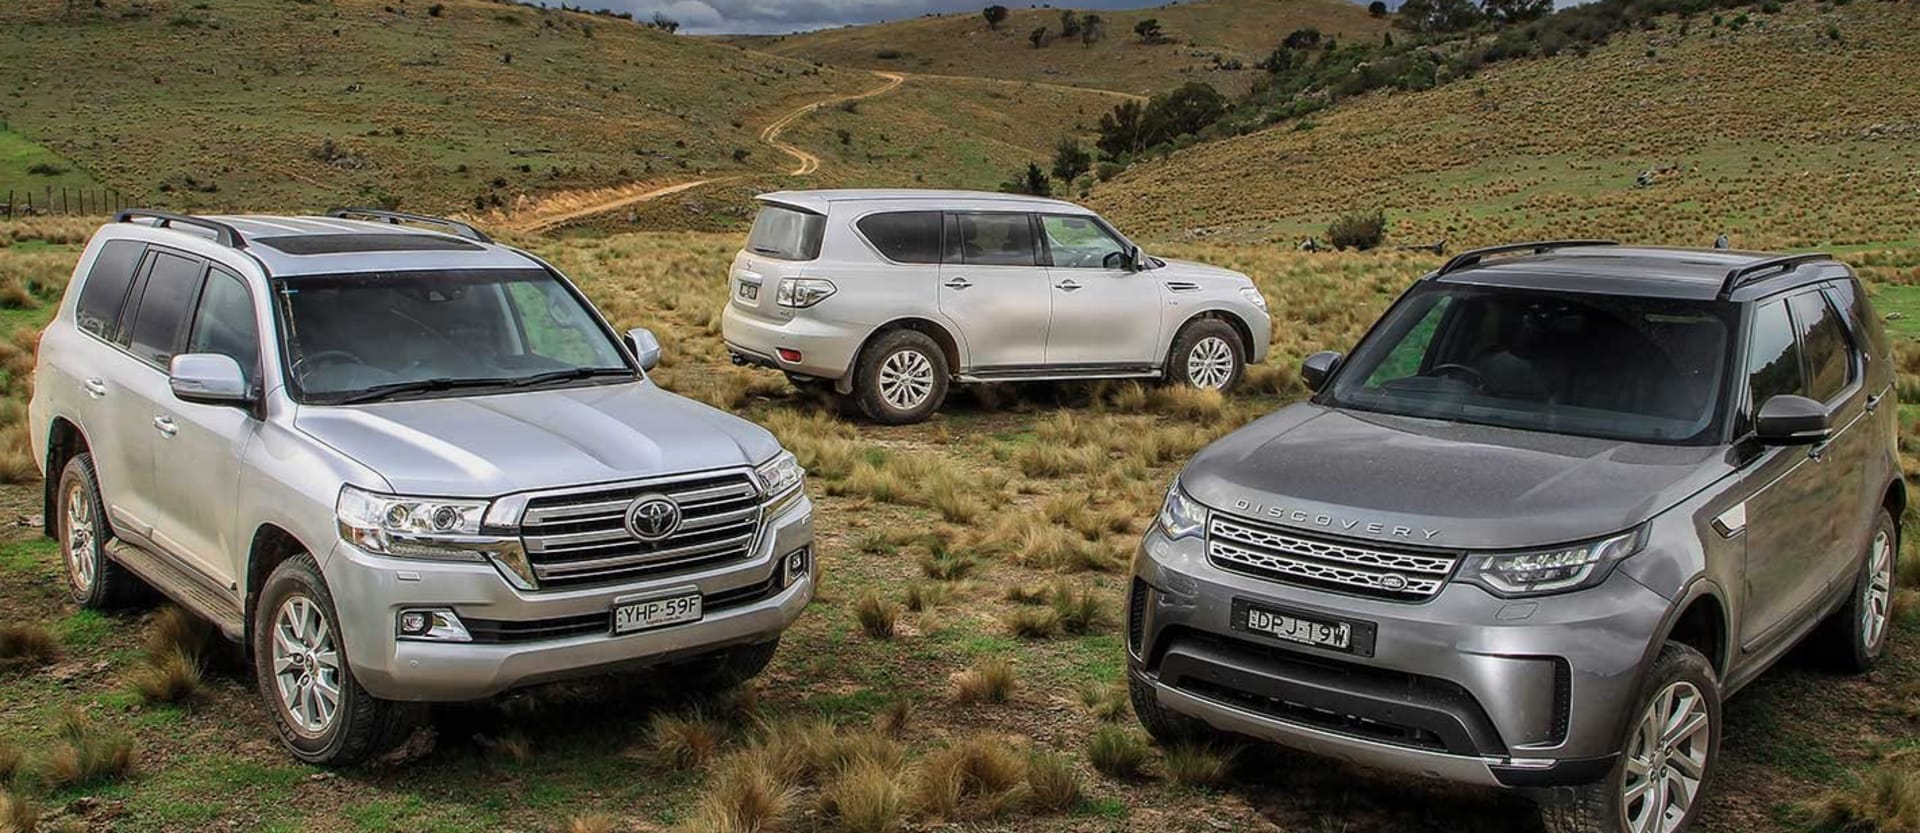 2018 Toyota Land Cruiser 200 vs Land Rover Discovery TD6 vs Nissan Y62 Patrol comparison review